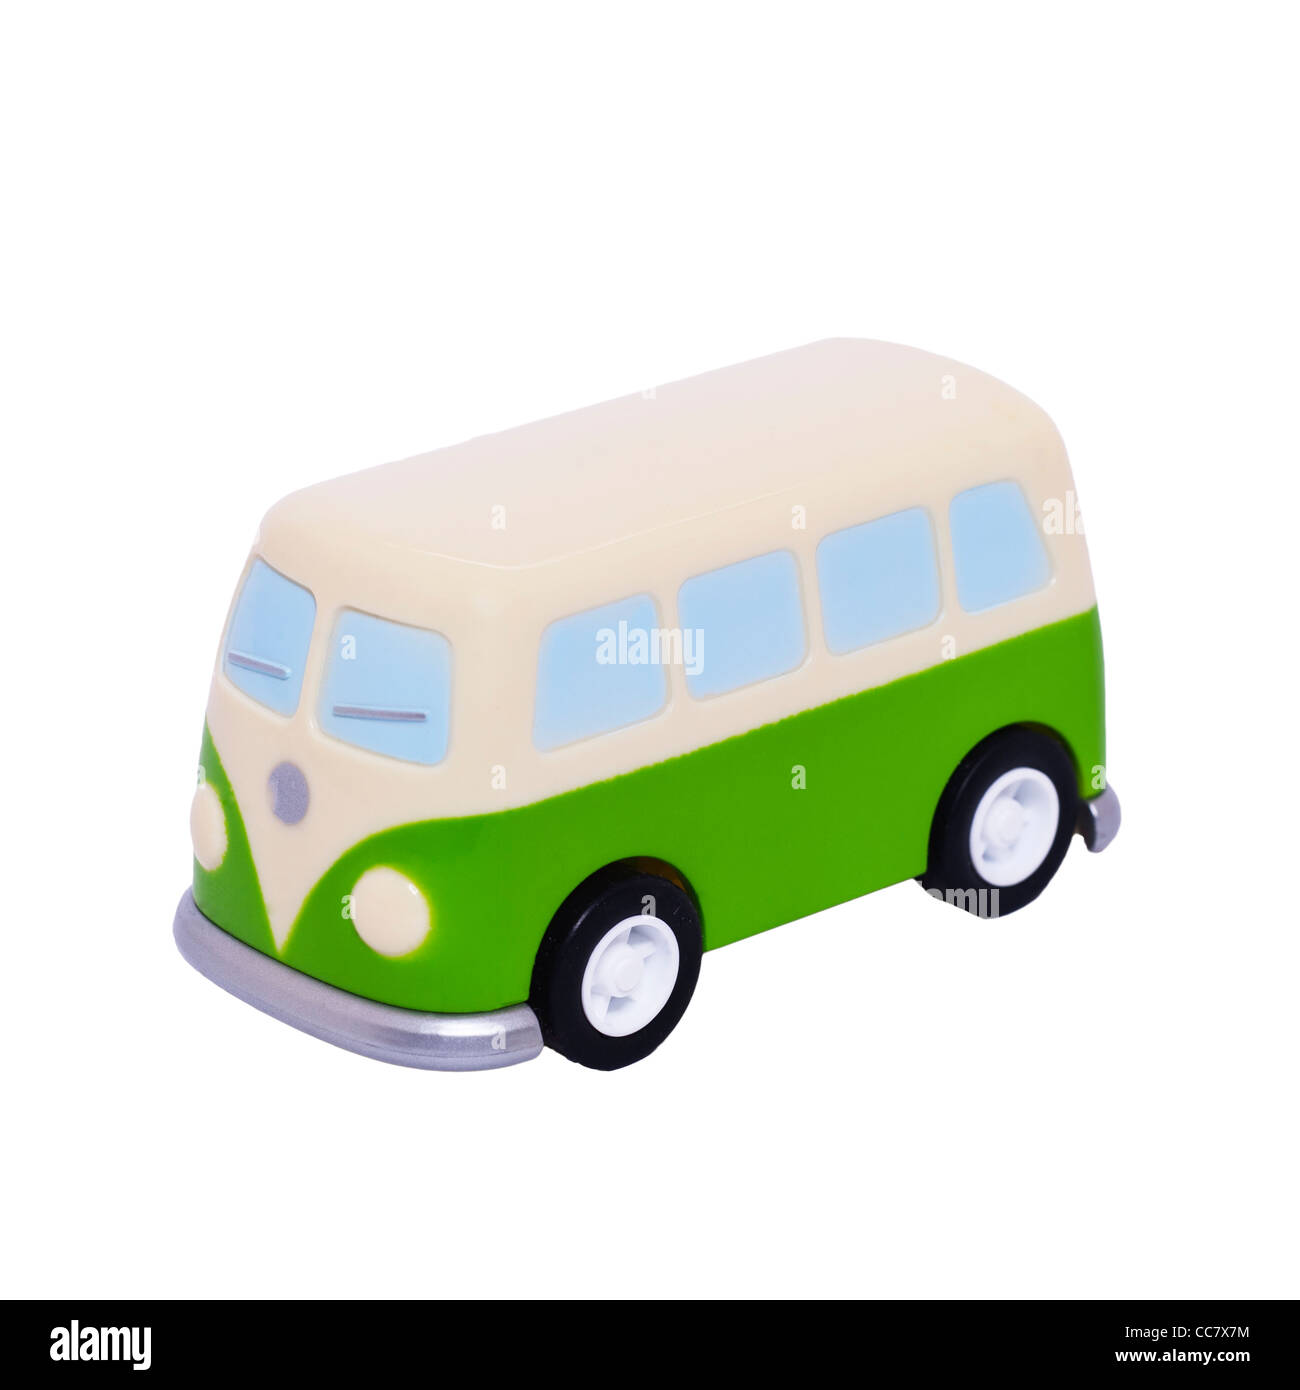 A model toy VW camper van on a white background - Stock Image